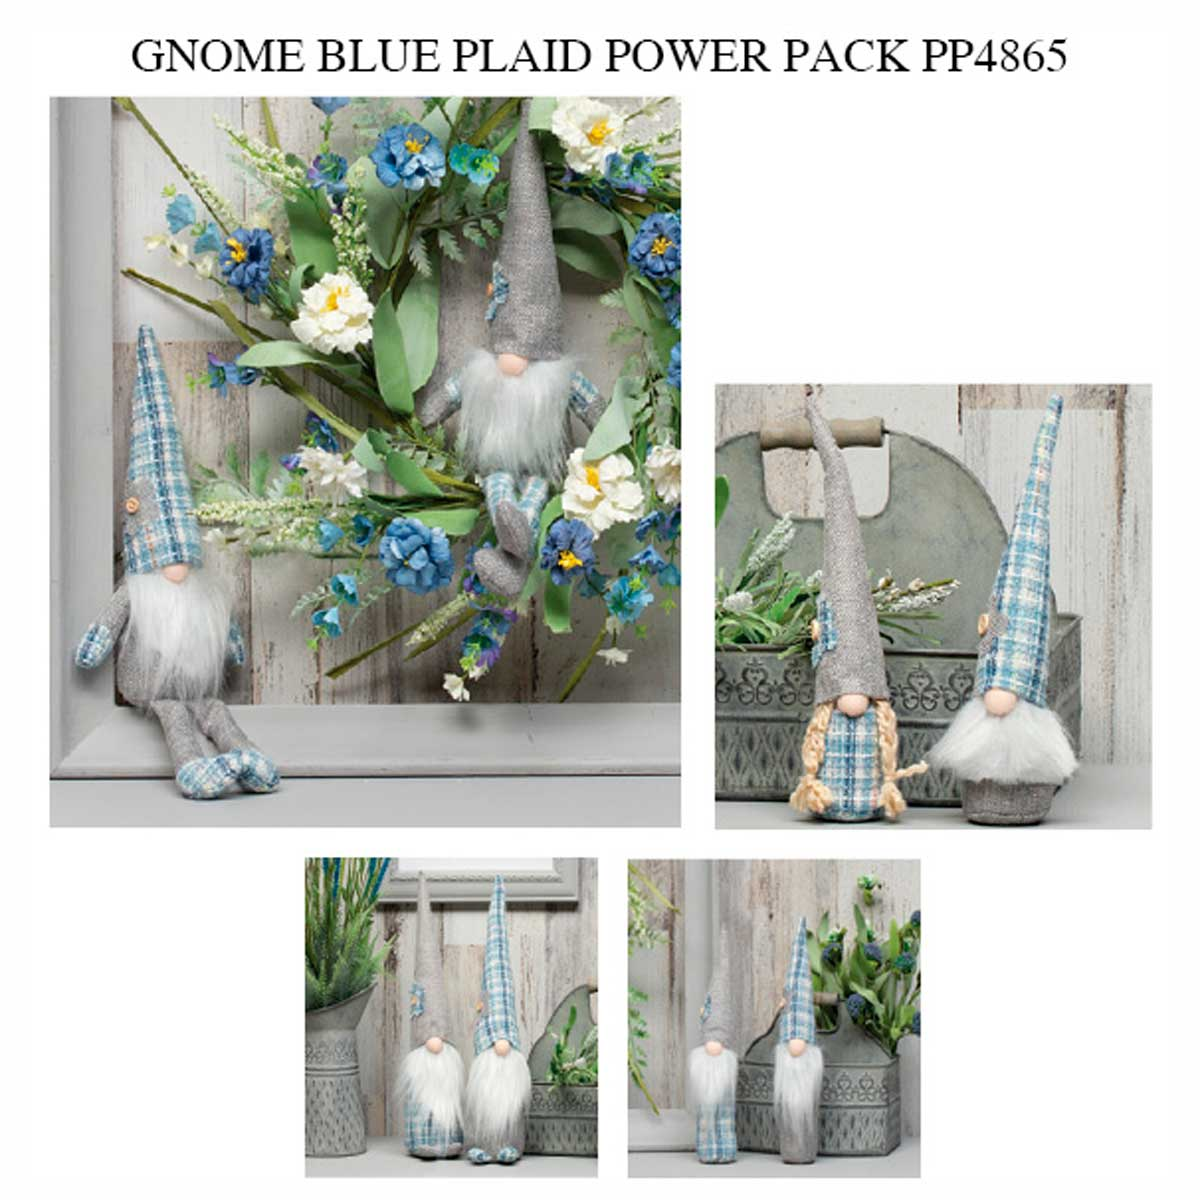 Blue Bayou Gnome Power Pack 36 Units PP4865